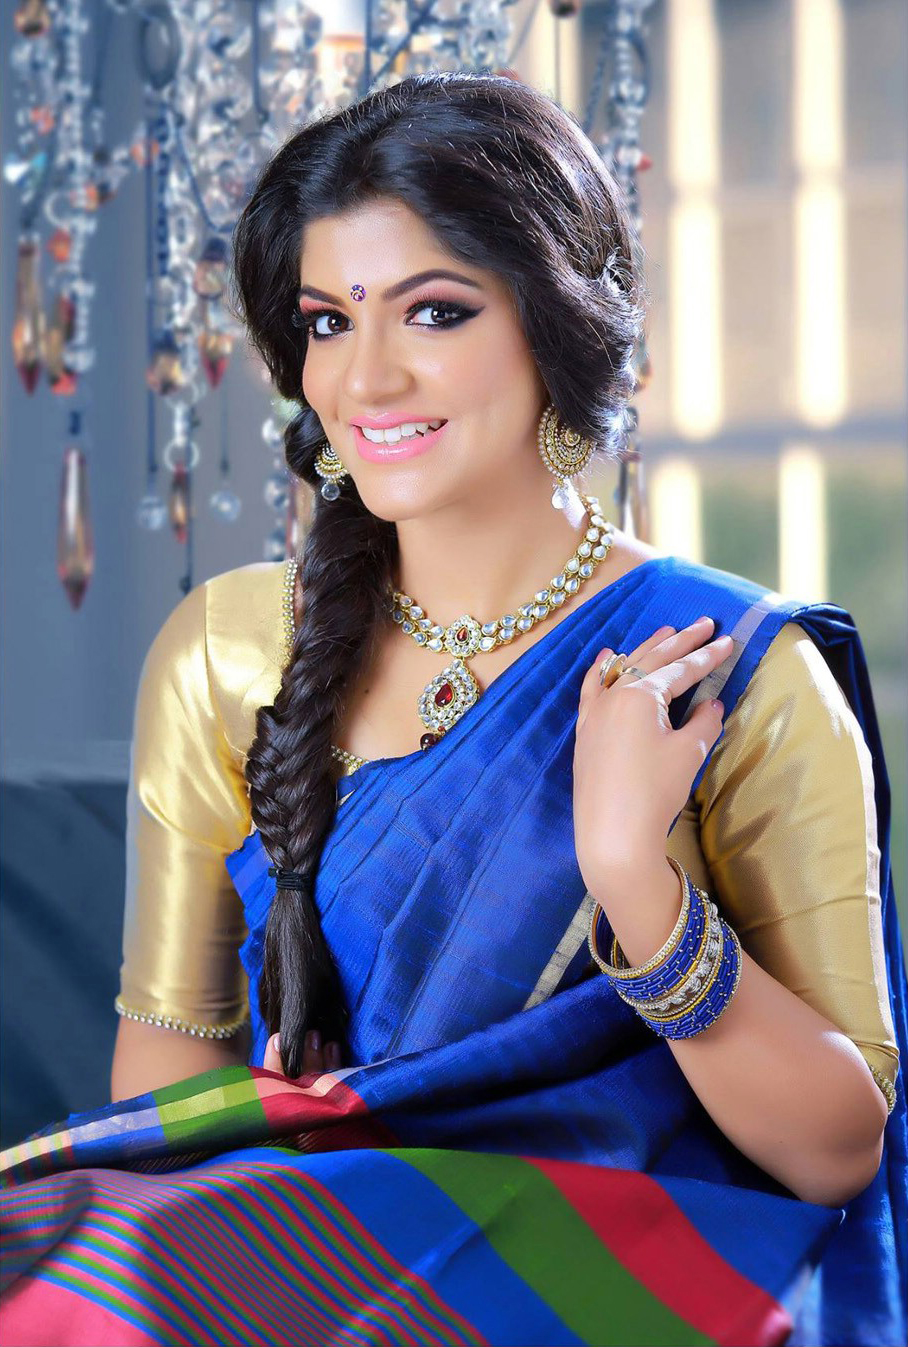 Aparna Balamurali Photo Shoot By Arshal 01 Hot